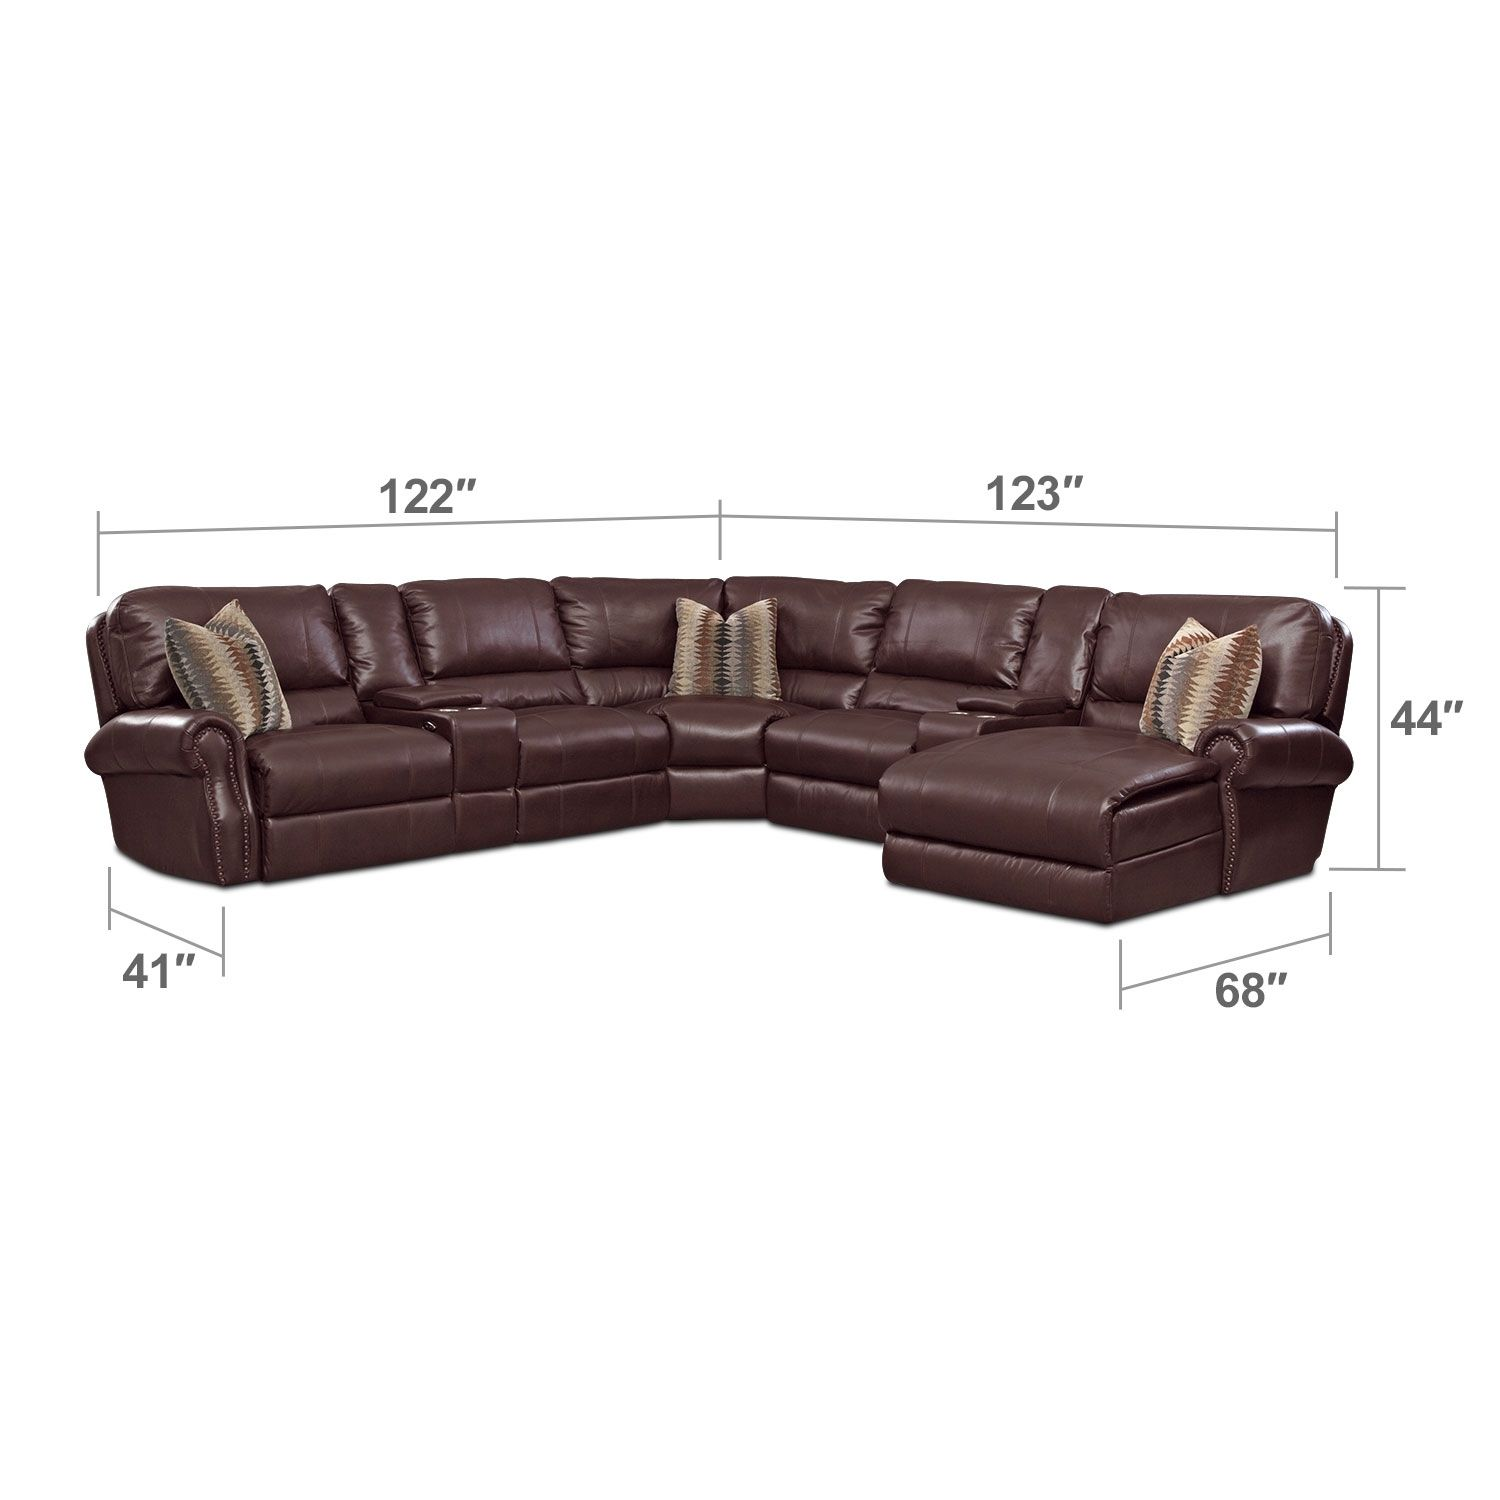 Peachy Princeton 5 Pc Power Reclining Sectional American Onthecornerstone Fun Painted Chair Ideas Images Onthecornerstoneorg